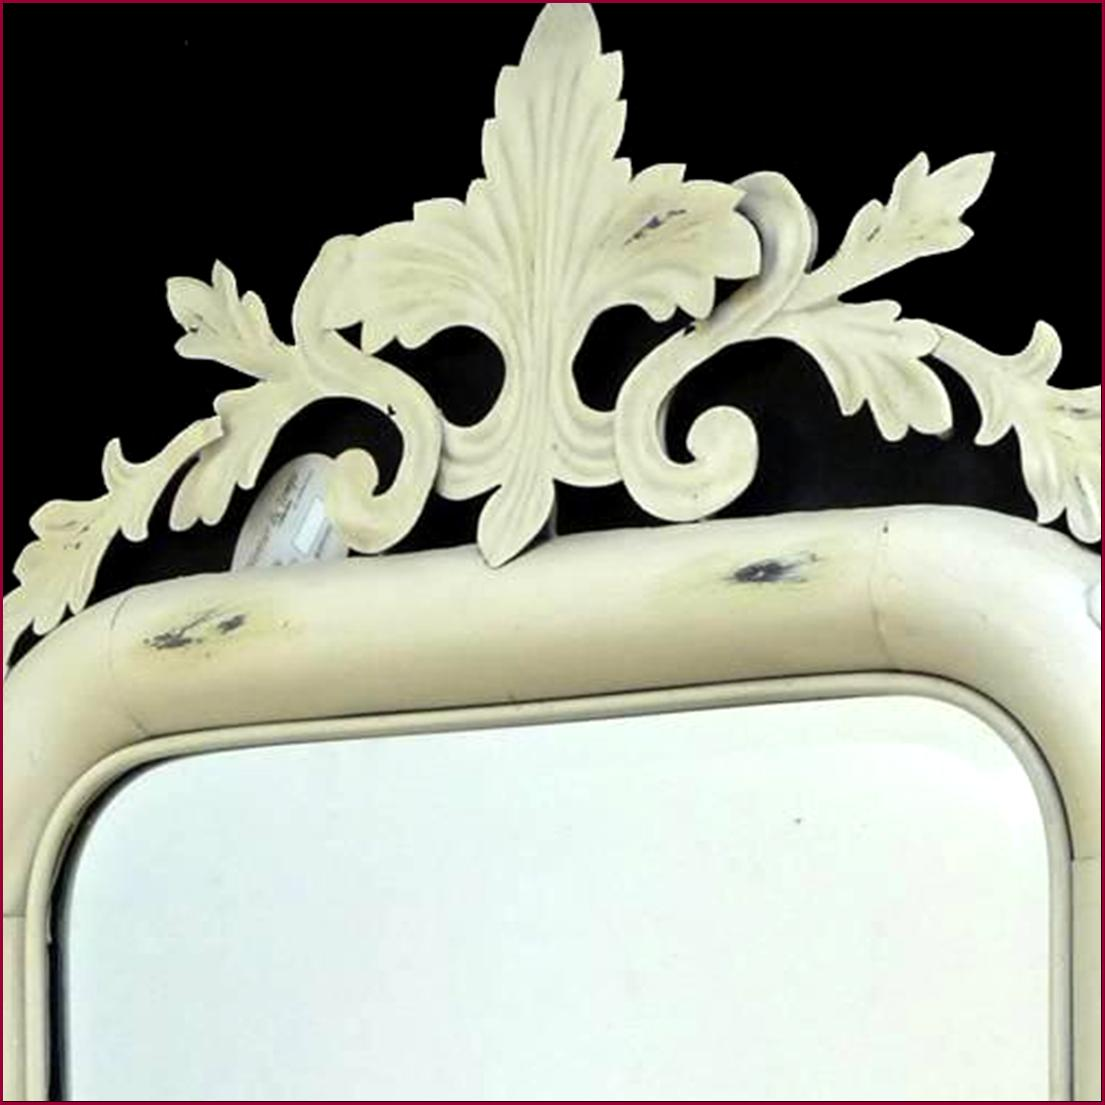 style ancien miroir antique trumeau blanc en fer de salon cuisine salle de bain ebay. Black Bedroom Furniture Sets. Home Design Ideas